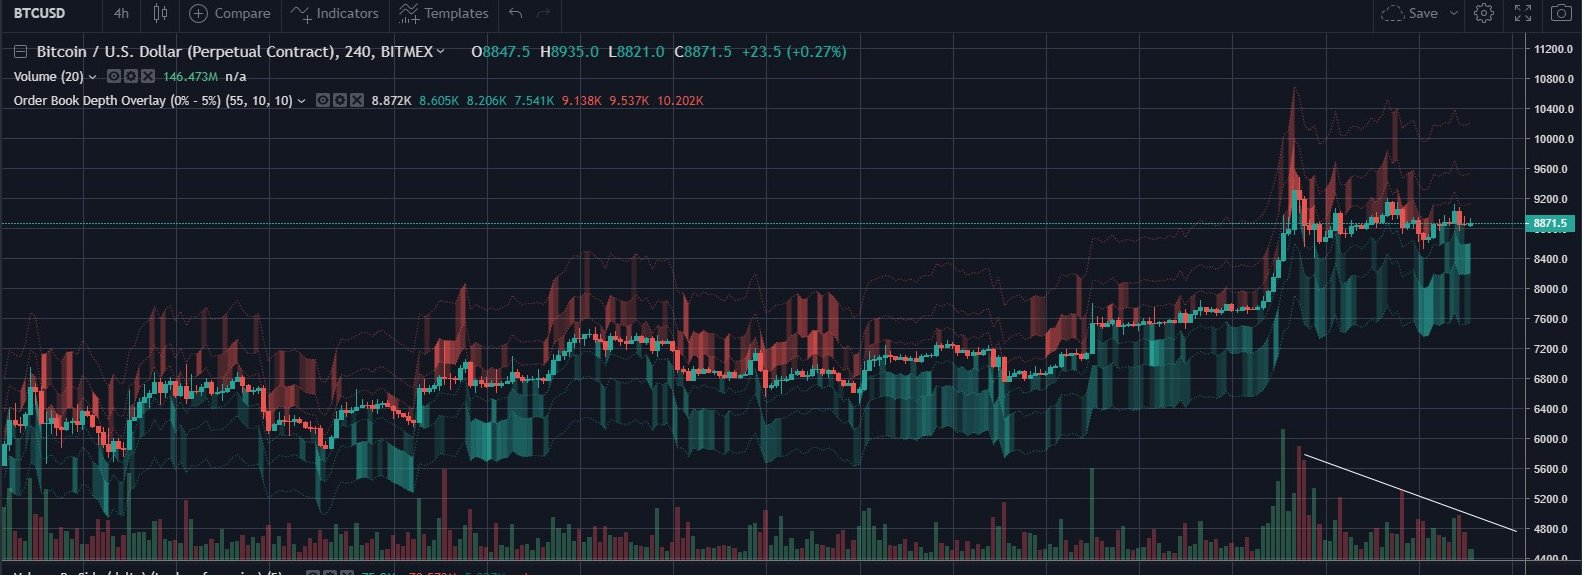 Bitcoin orderbook according to BitMEX